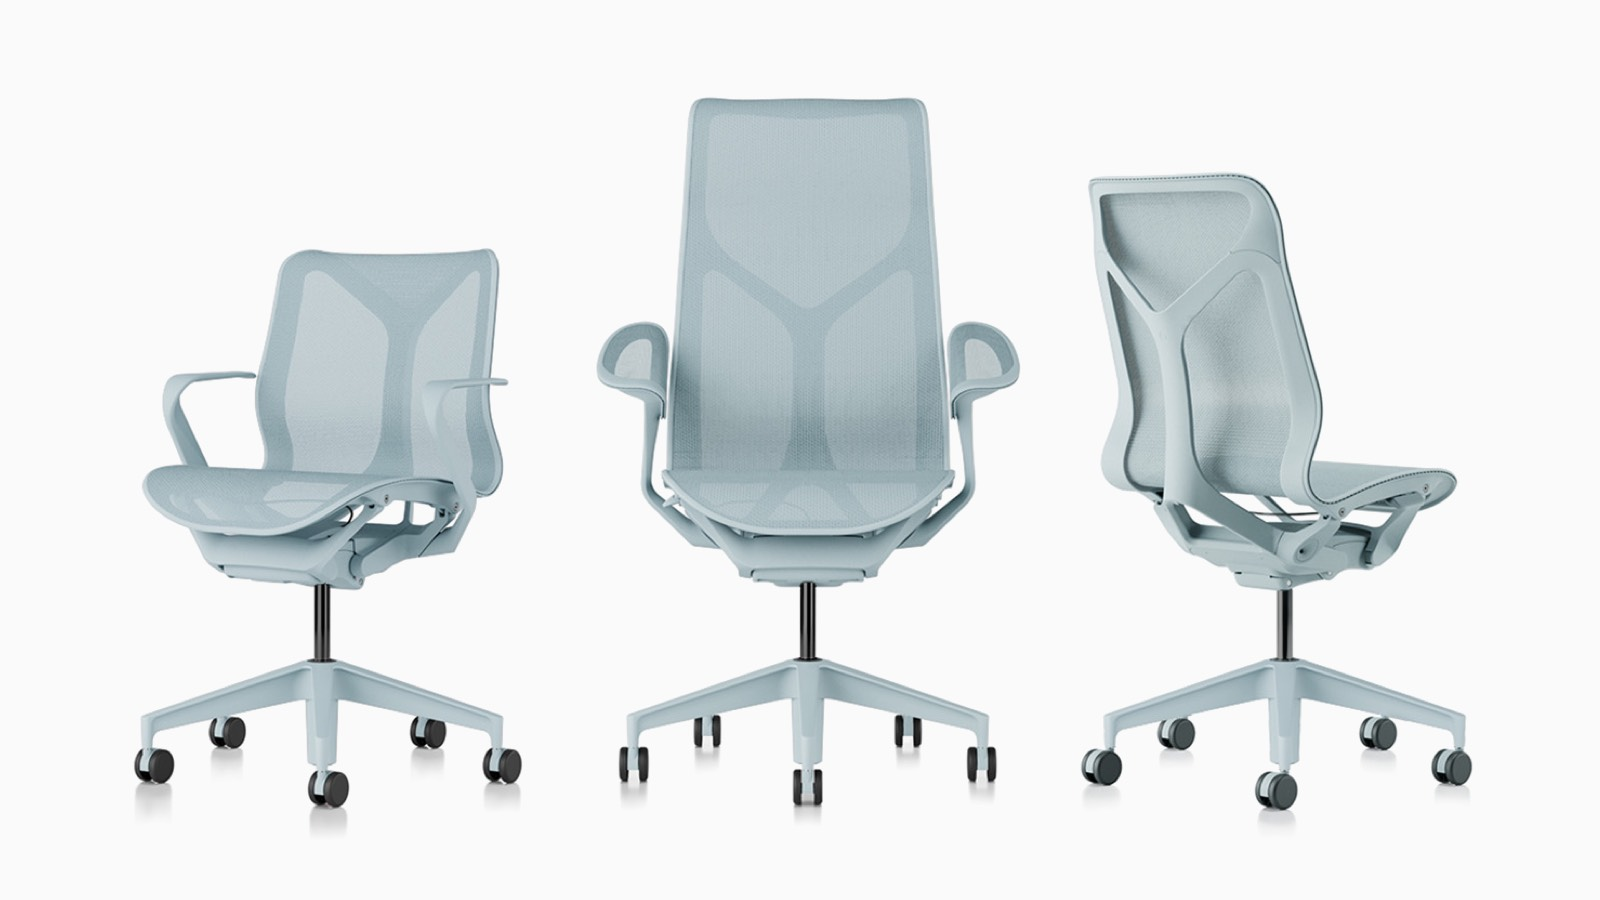 Low-back, high-back, and mid-back Cosm ergonomic desk chairs with suspension materials, bases, and frames in Glacier light blue.